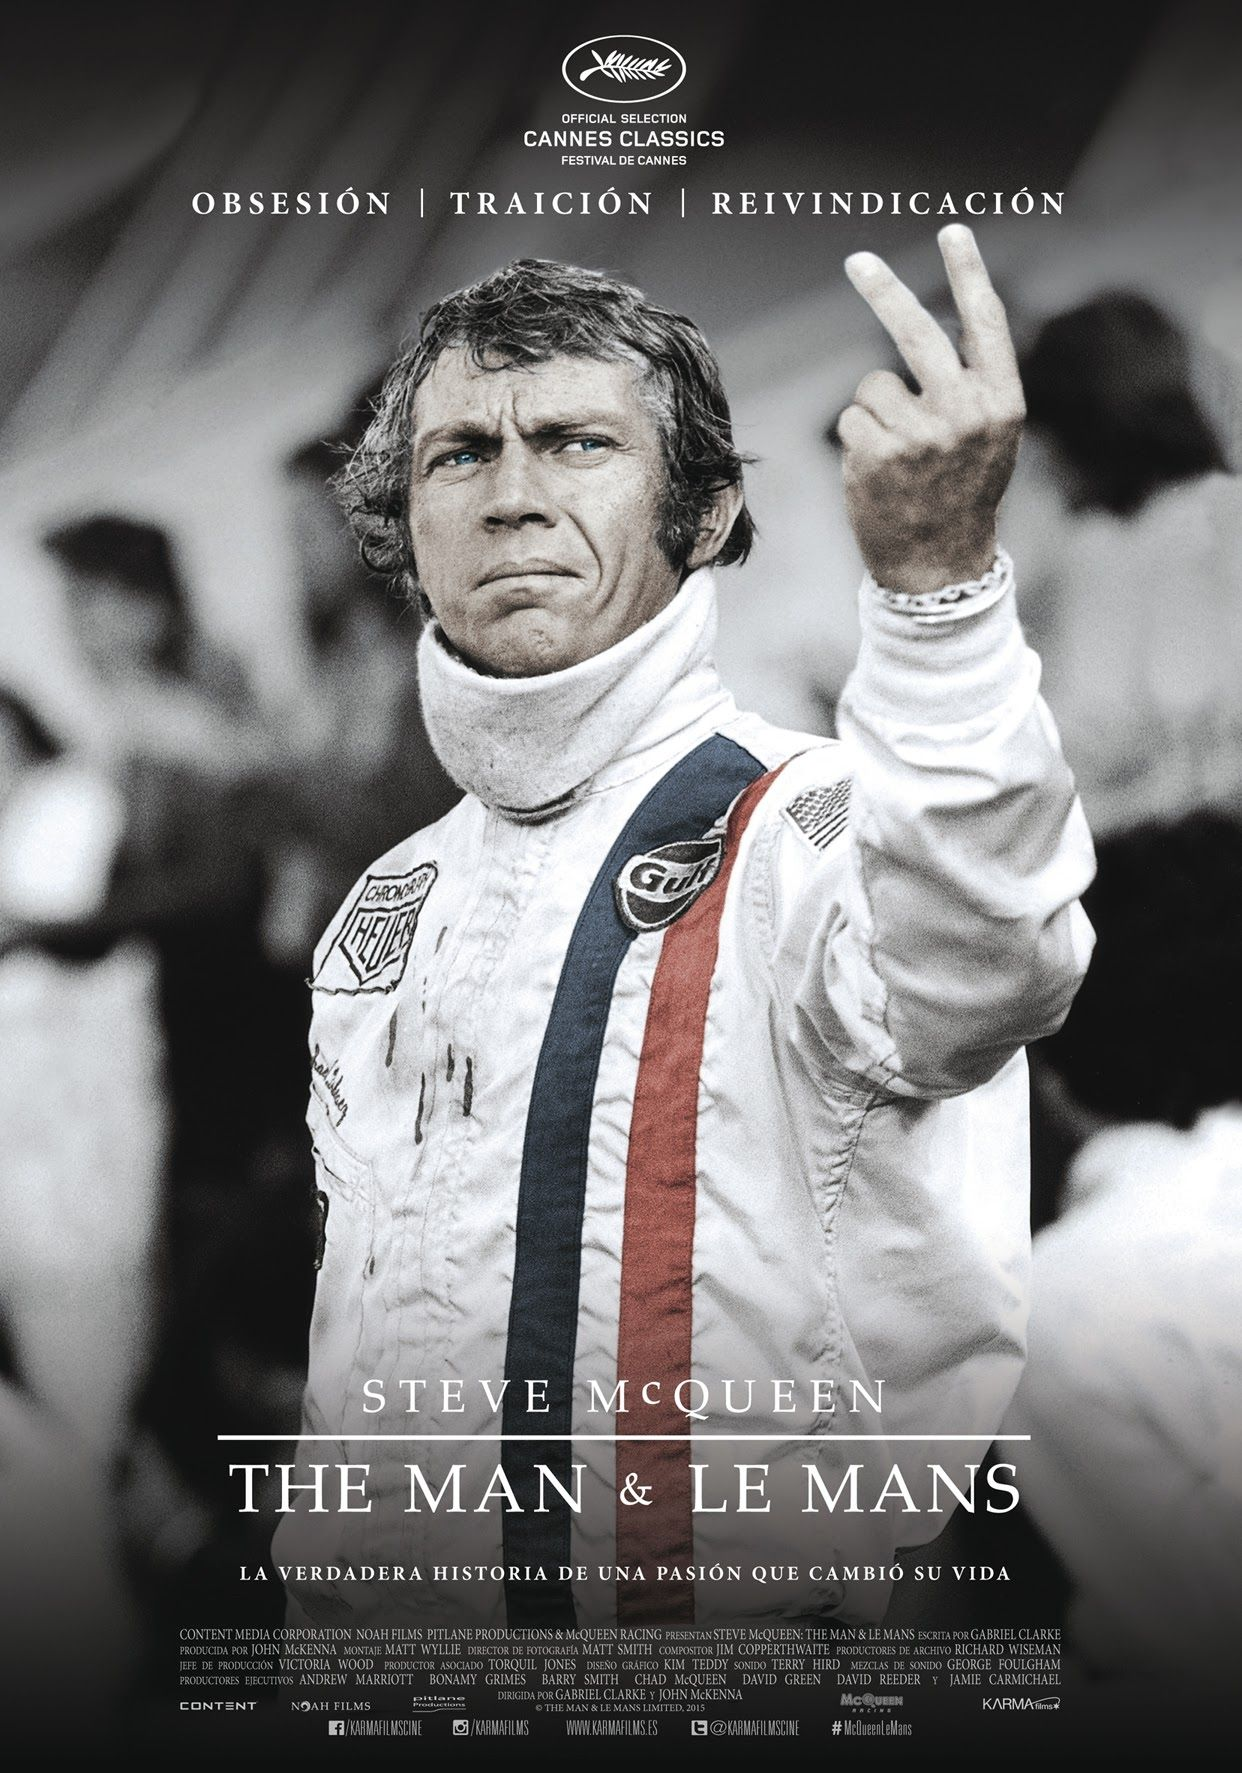 ec5436f165 Steve McQueen  The Man   Le Mans